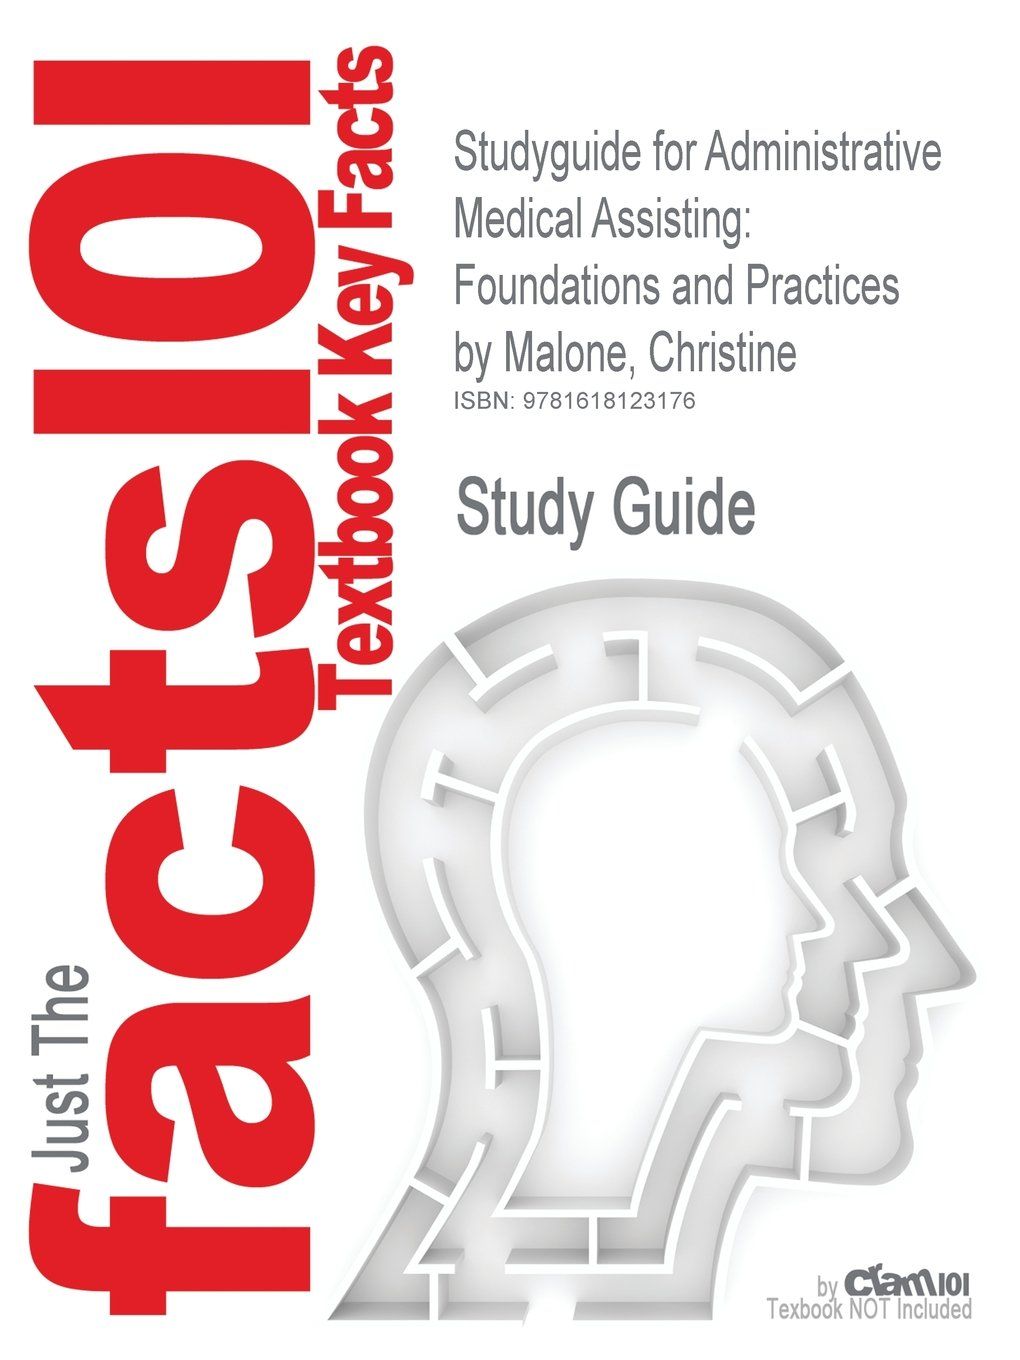 Buy Studyguide for Administrative Medical Assisting: Foundations and  Practices by Malone, Christine, ISBN 9780131999329 (Cram101 Textbook  Outlines) Book ...